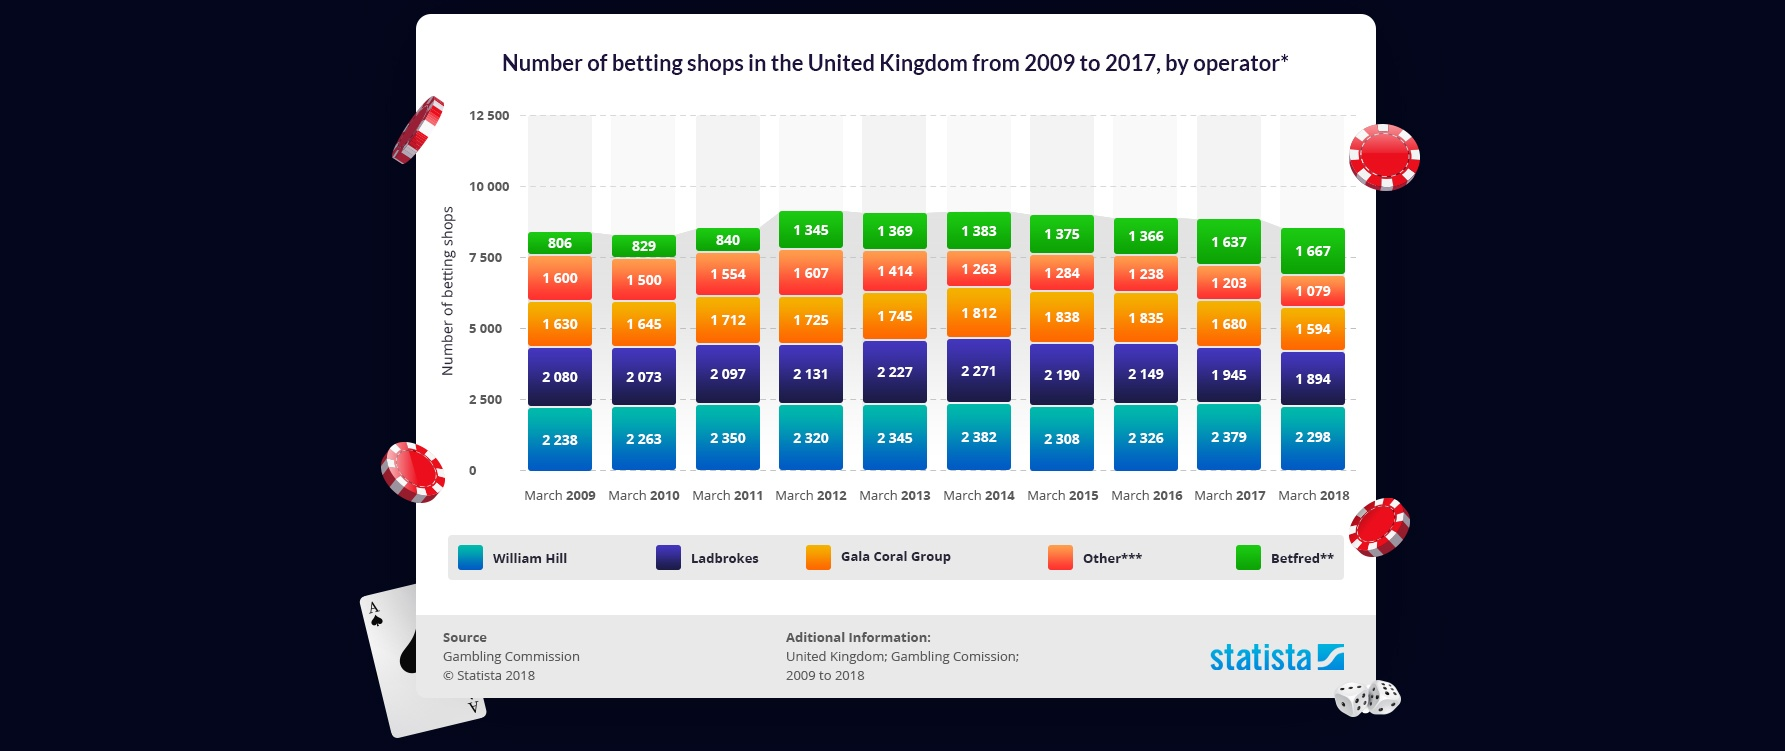 A chart to show the number of betting shops in the UK from 2009 to 2017